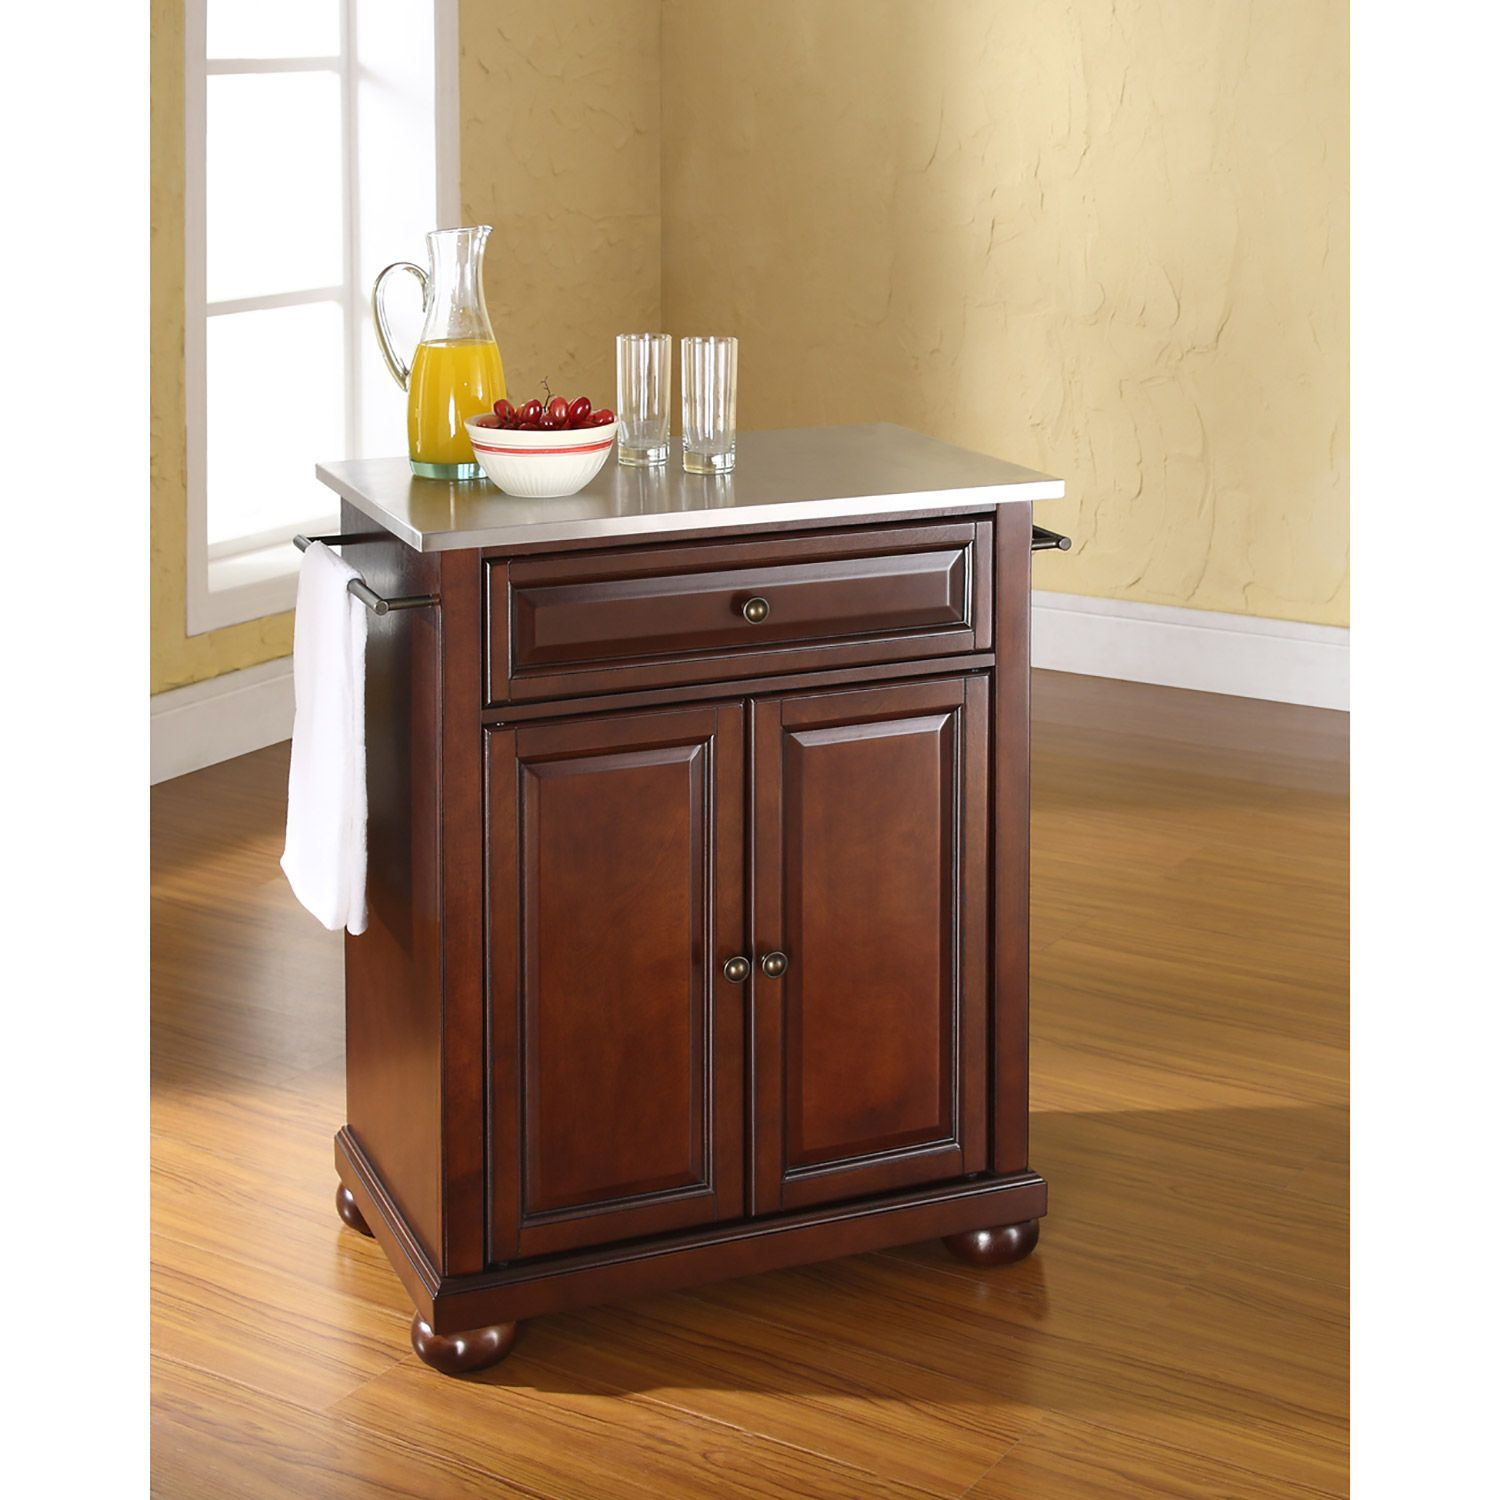 Picture of Alexandria Steel Top Kitchen Cart, Mahogany *D